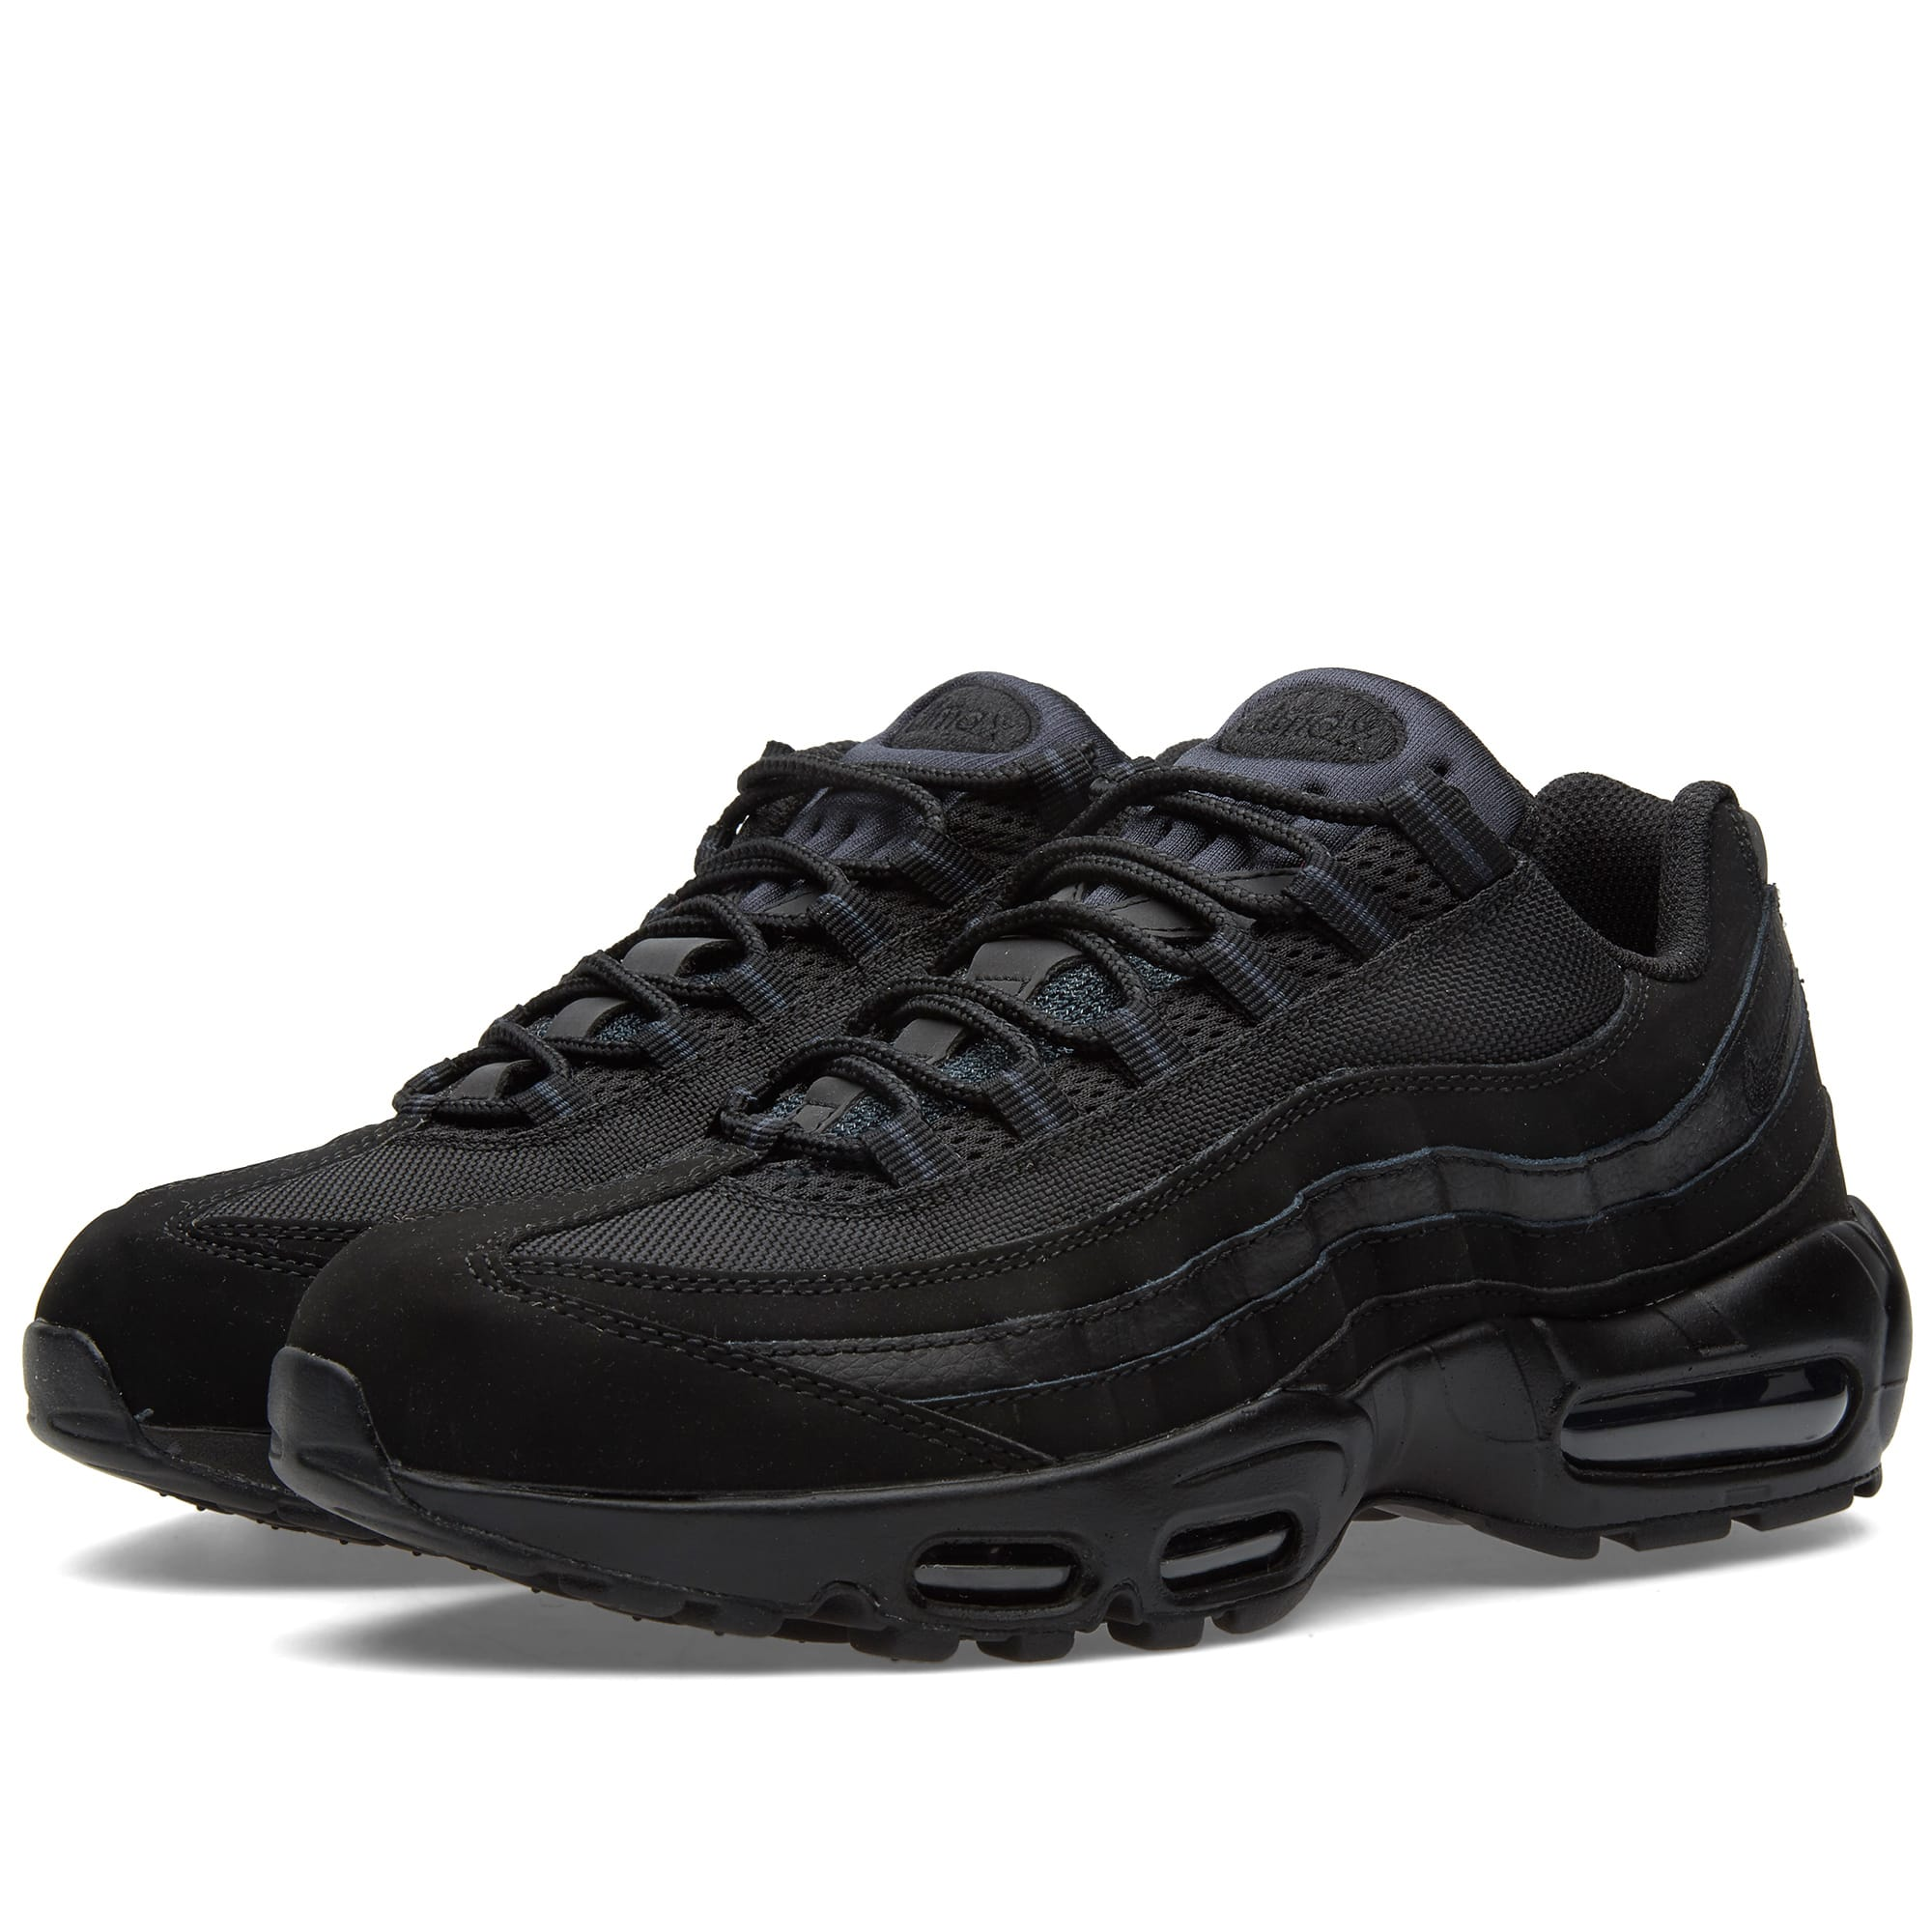 Air Max 95 Black Suede